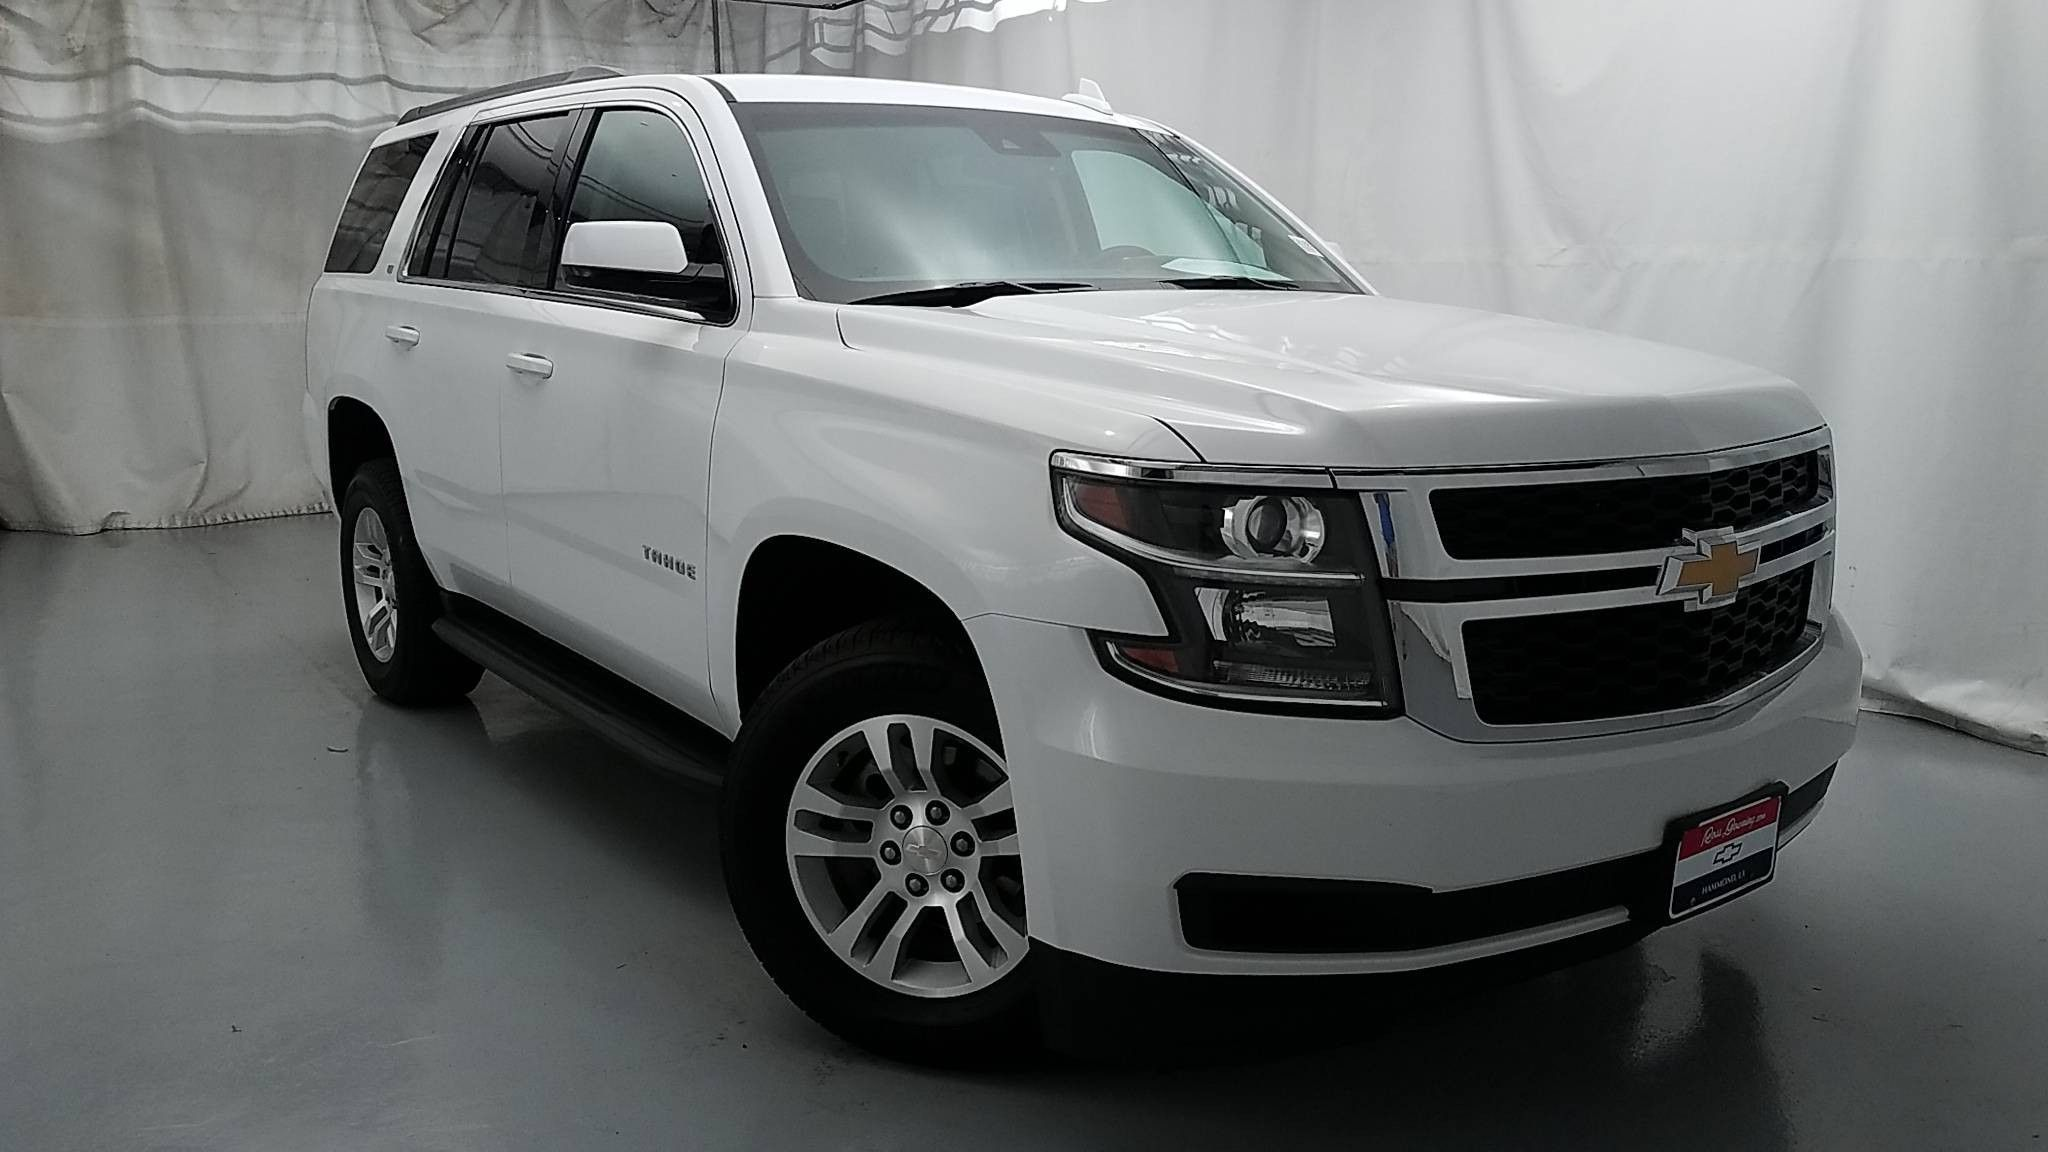 2018 Chevy Tahoe Ltz Best Used Chevrolet Tahoe Vehicles For Sale